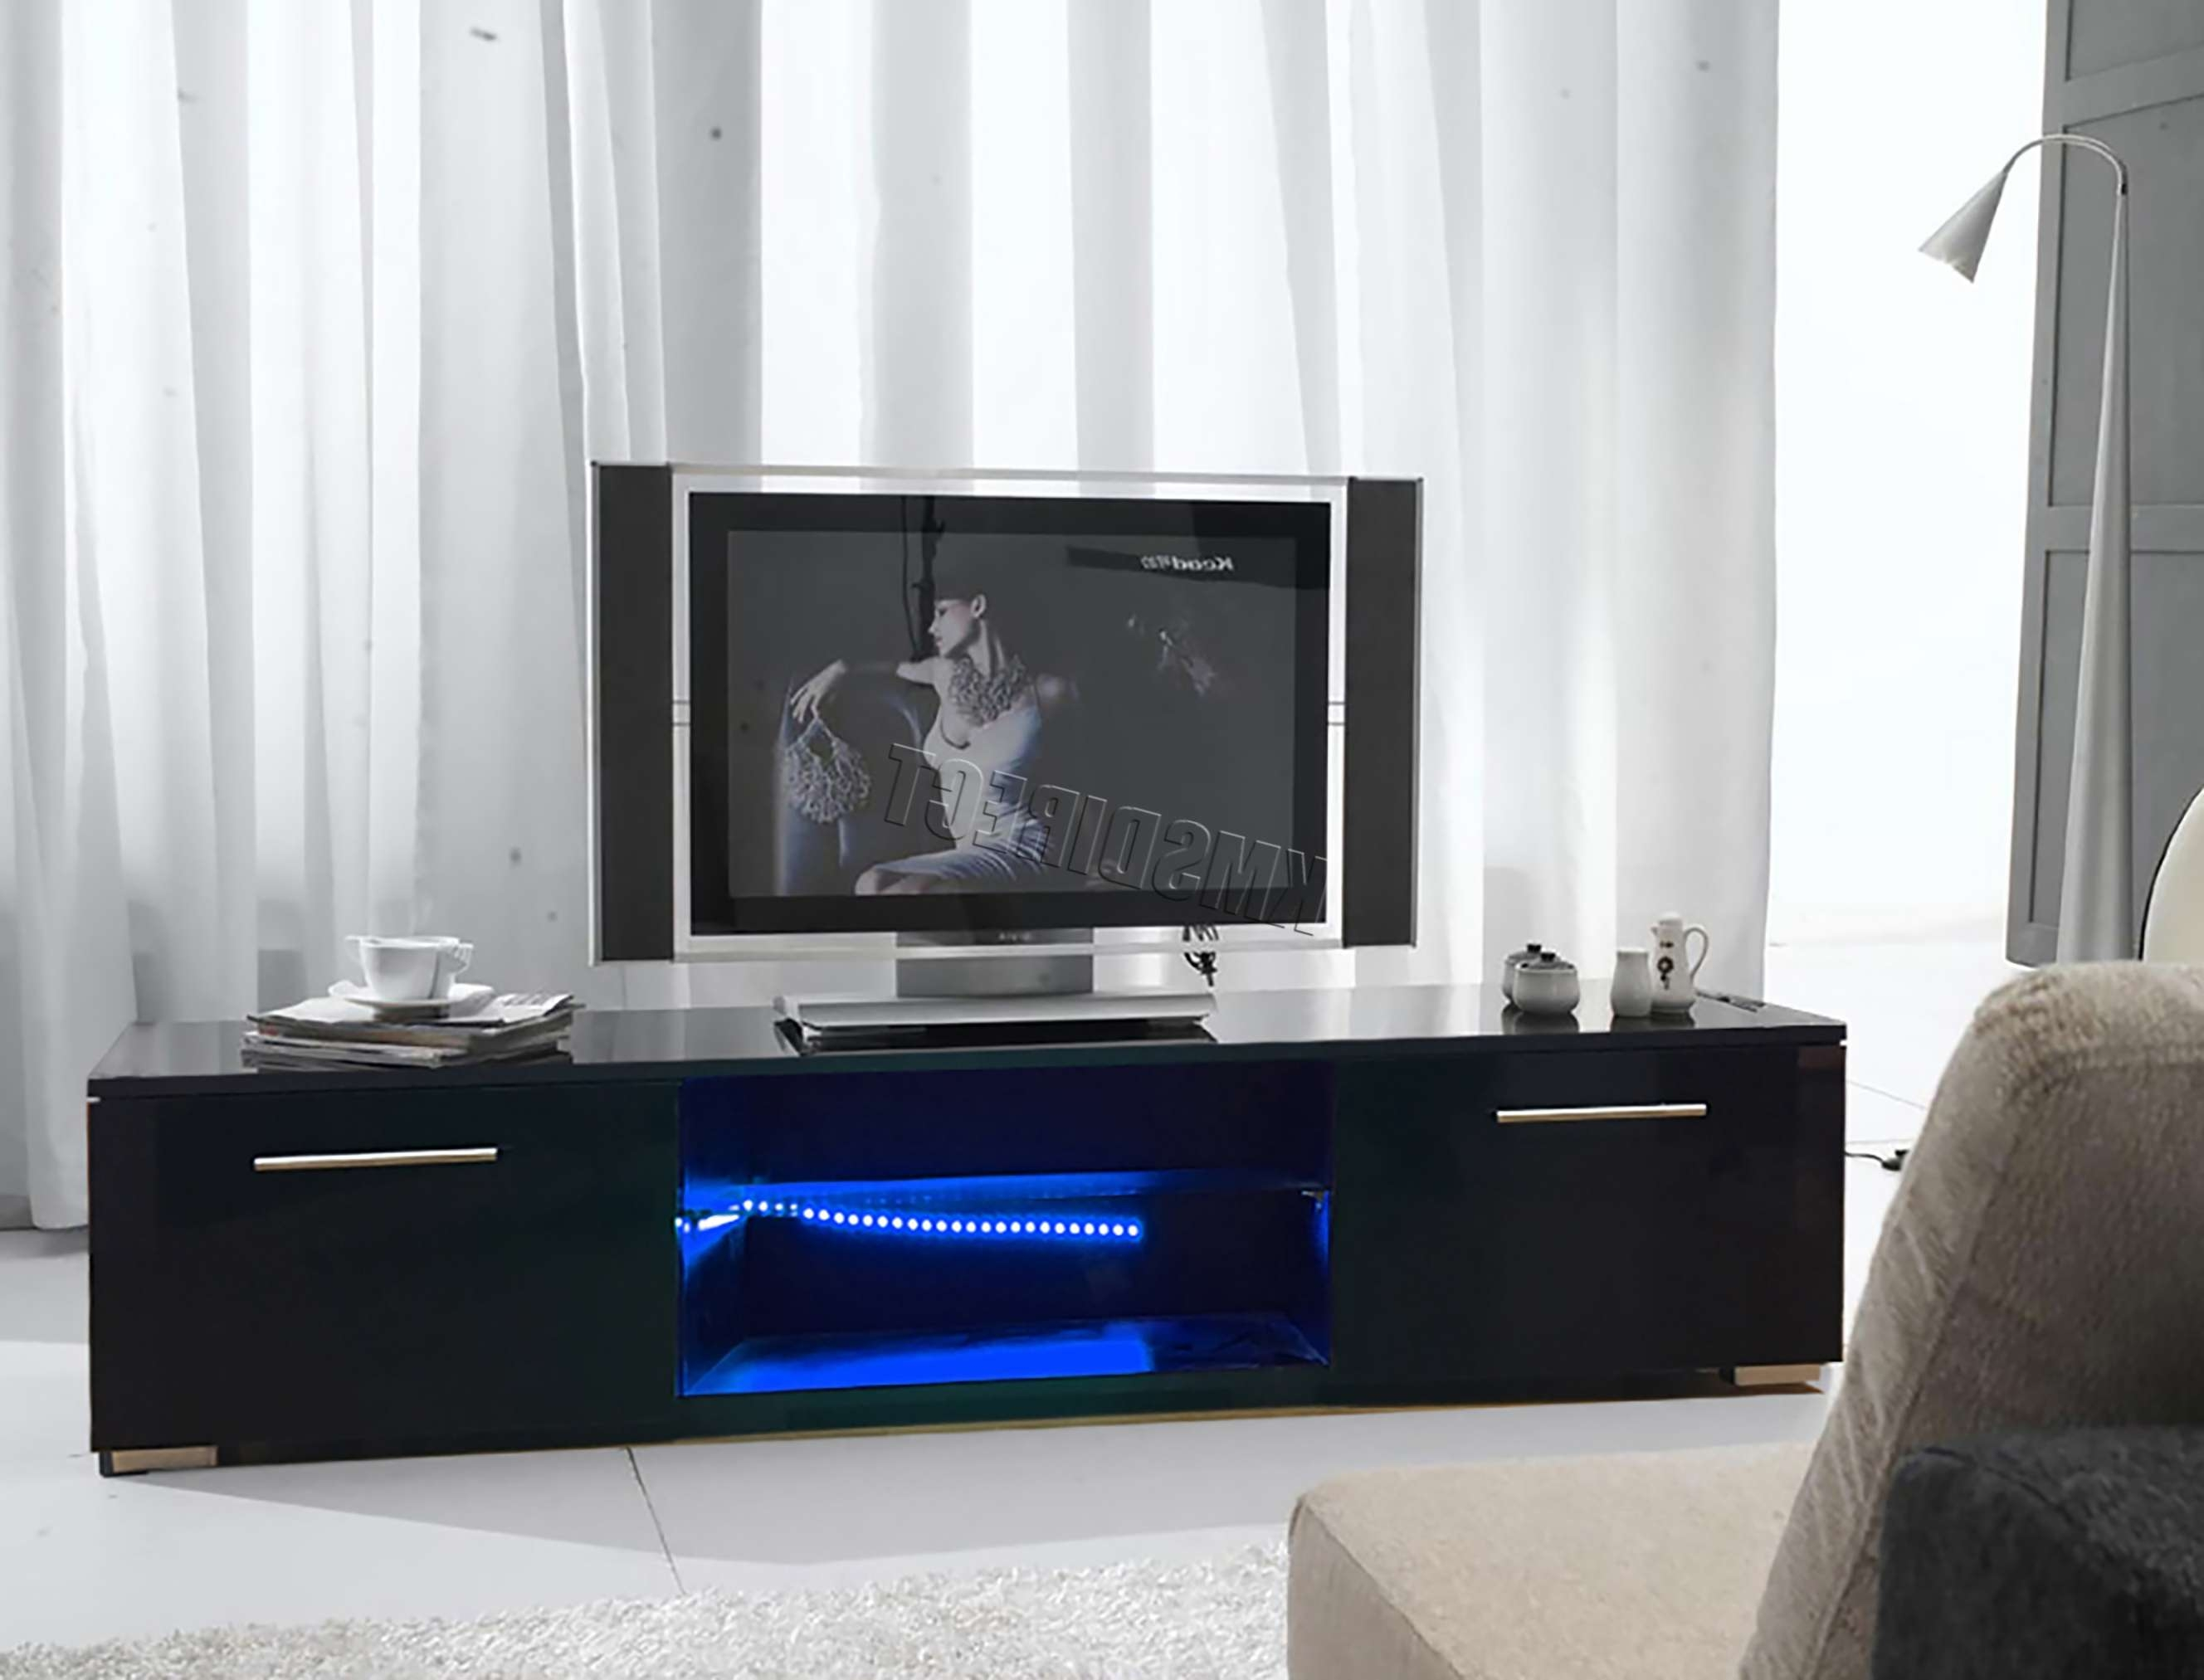 Foxhunter Modern High Gloss Matt Tv Cabinet Unit Stand Black Rgb Pertaining To Tv Cabinets Black High Gloss (View 7 of 20)